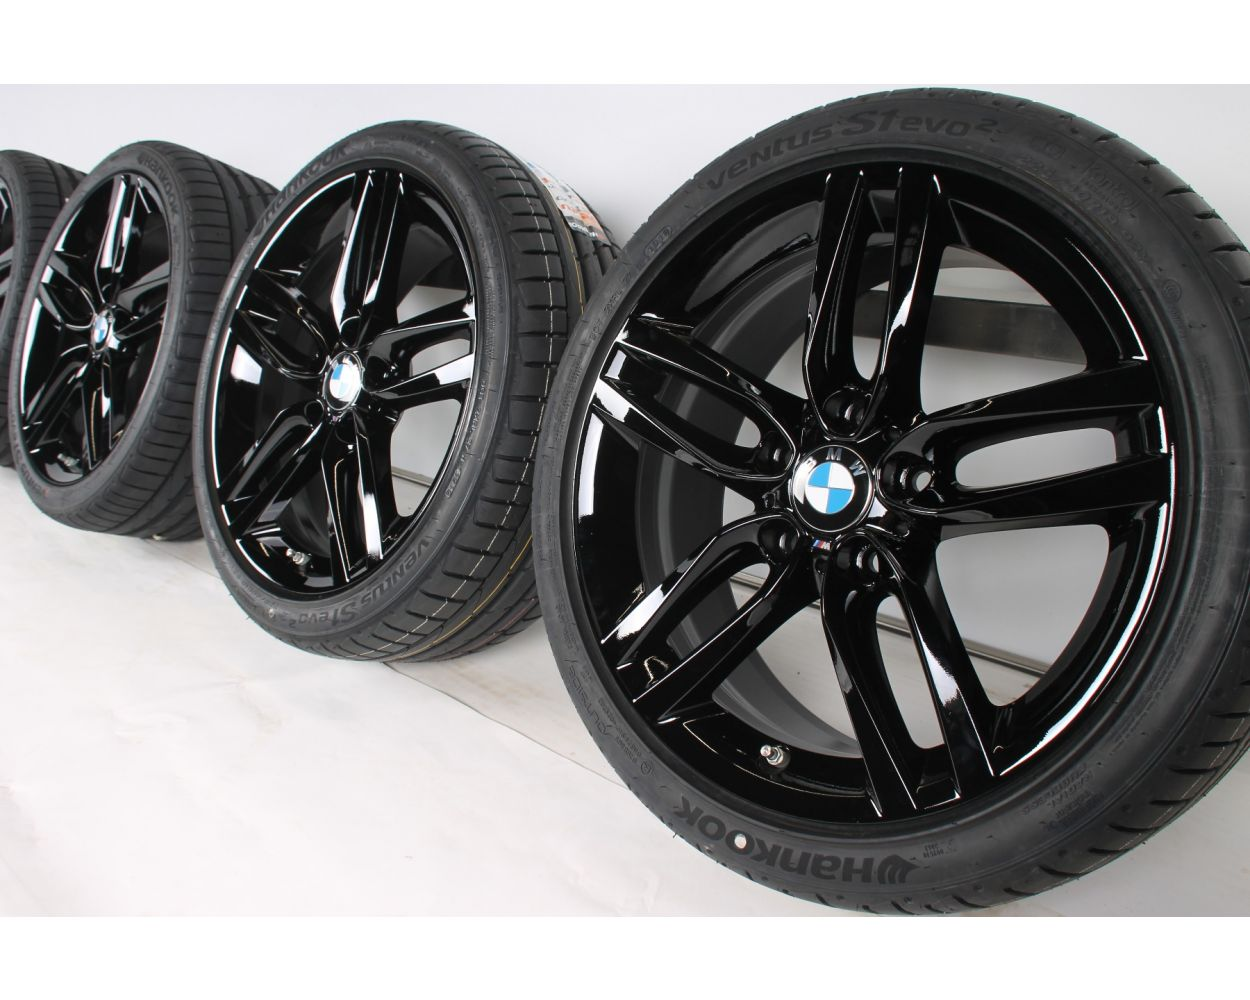 Bmw Summer Wheels 1er F20 F21 2er F22 F23 18 Zoll 461 M Double Spoke Rdc Silber